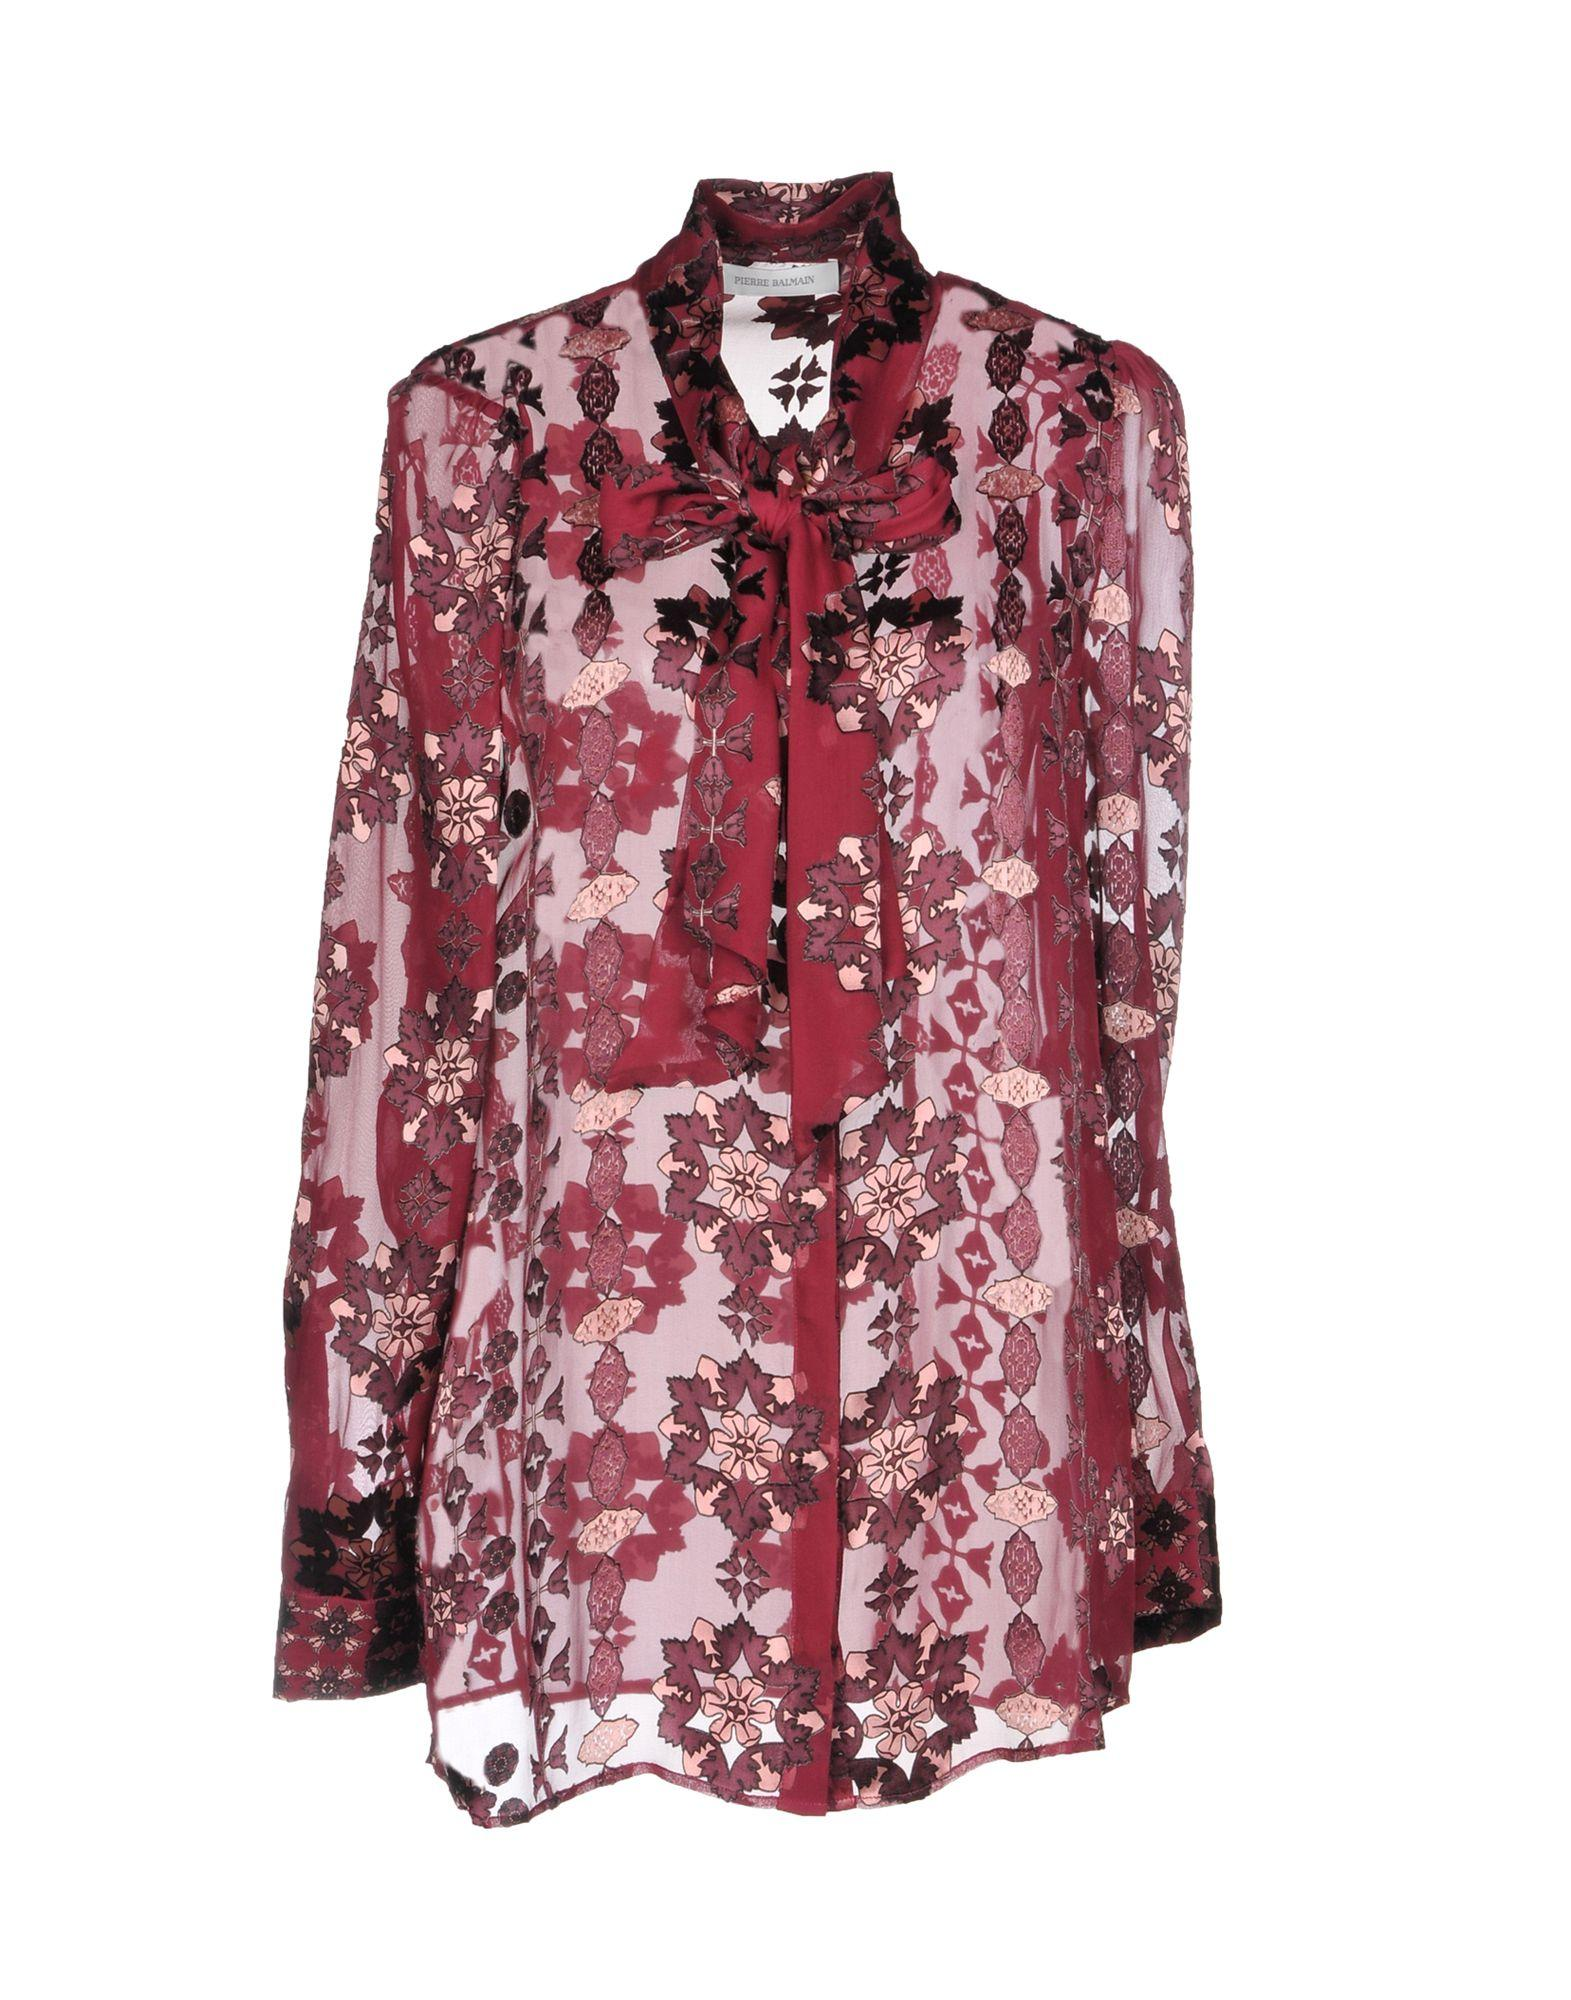 Pierre Balmain Floral Shirts & Blouses In Maroon